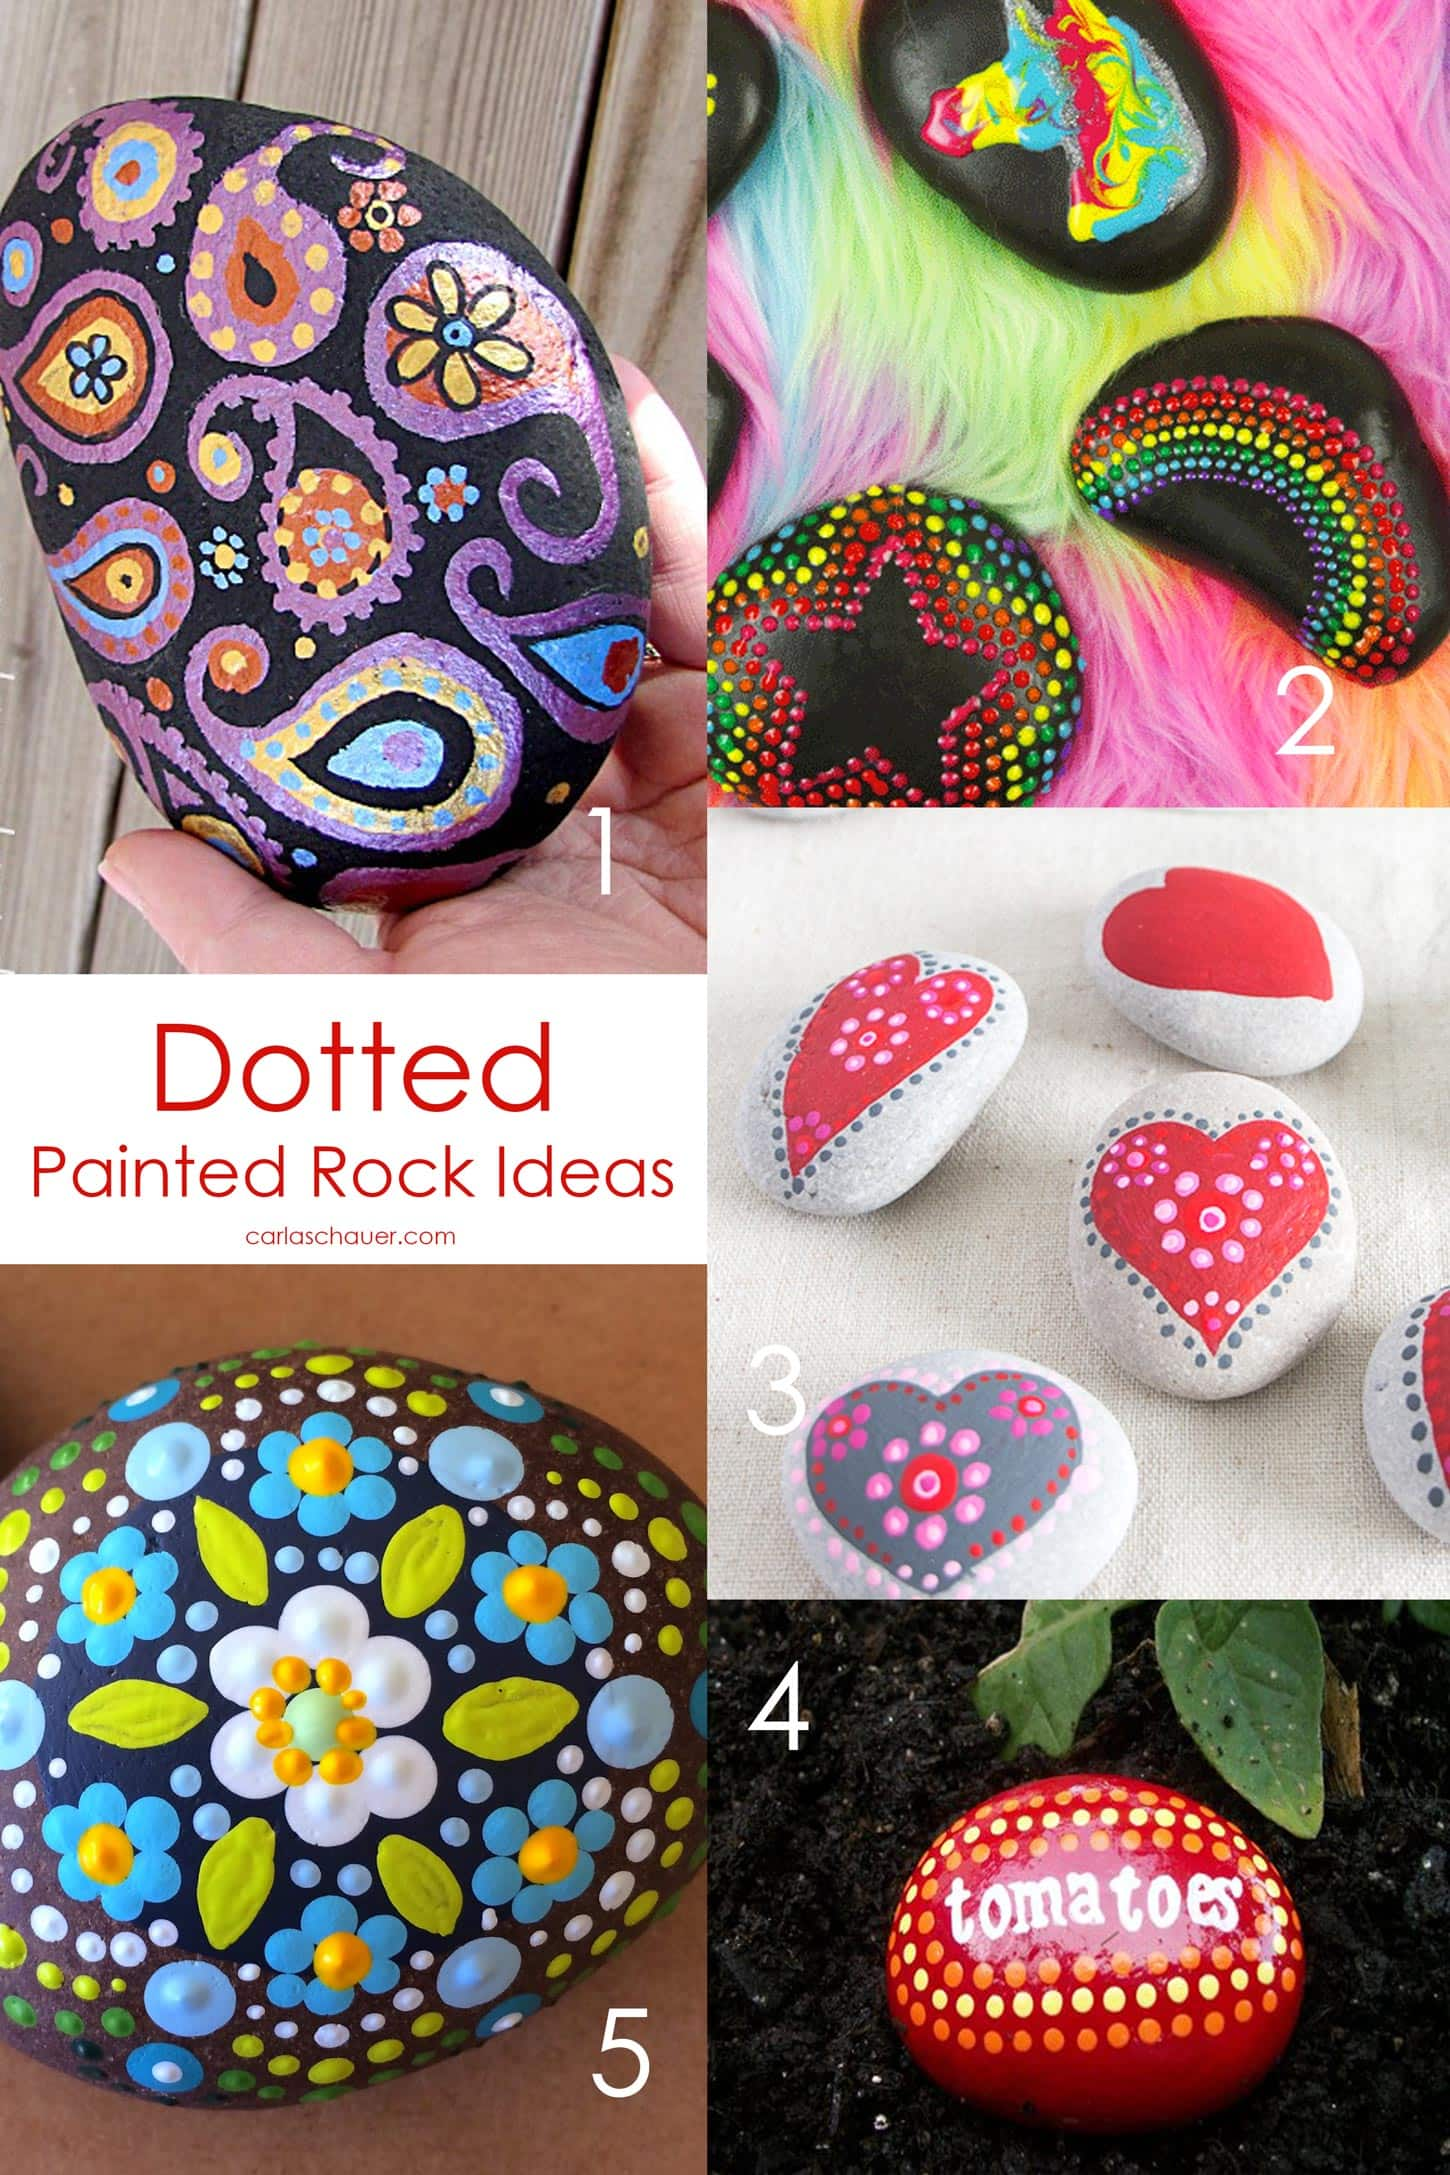 Dotted Easy Rock Painting Ideas - 20+ Easy Painting Ideas